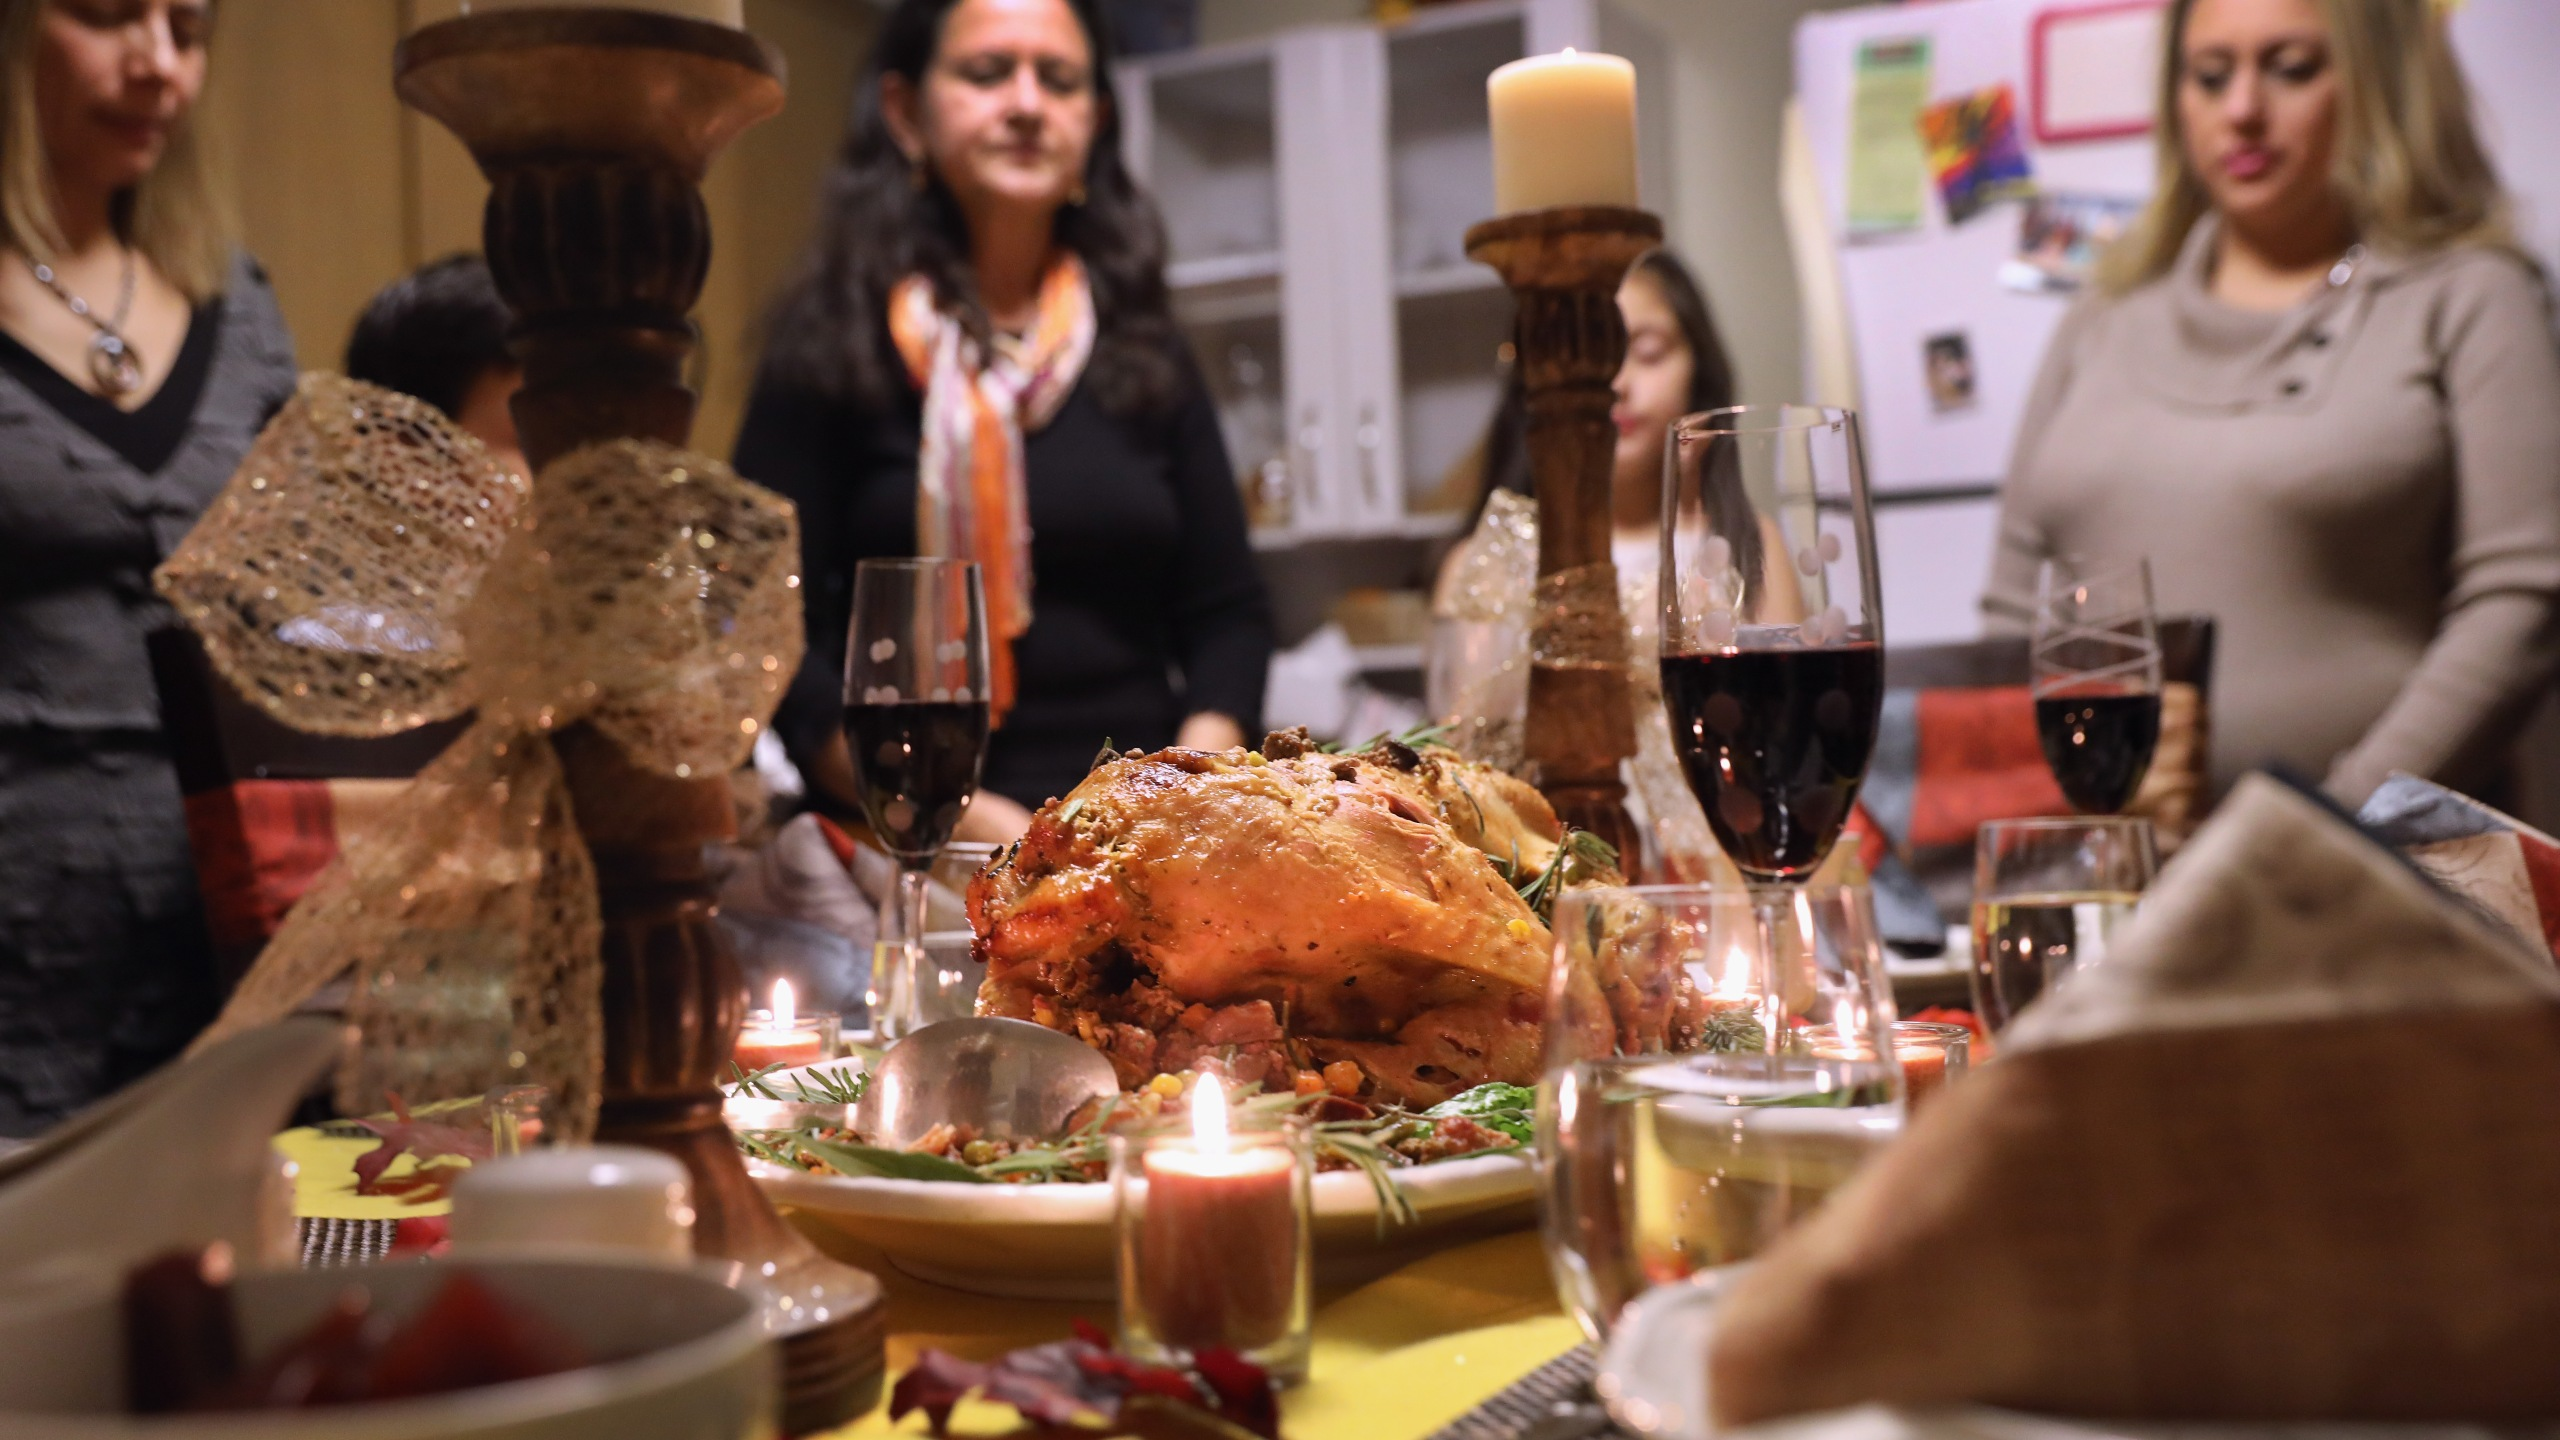 Immigrant Families Celebrate Thanksgiving In Connecticut_585970